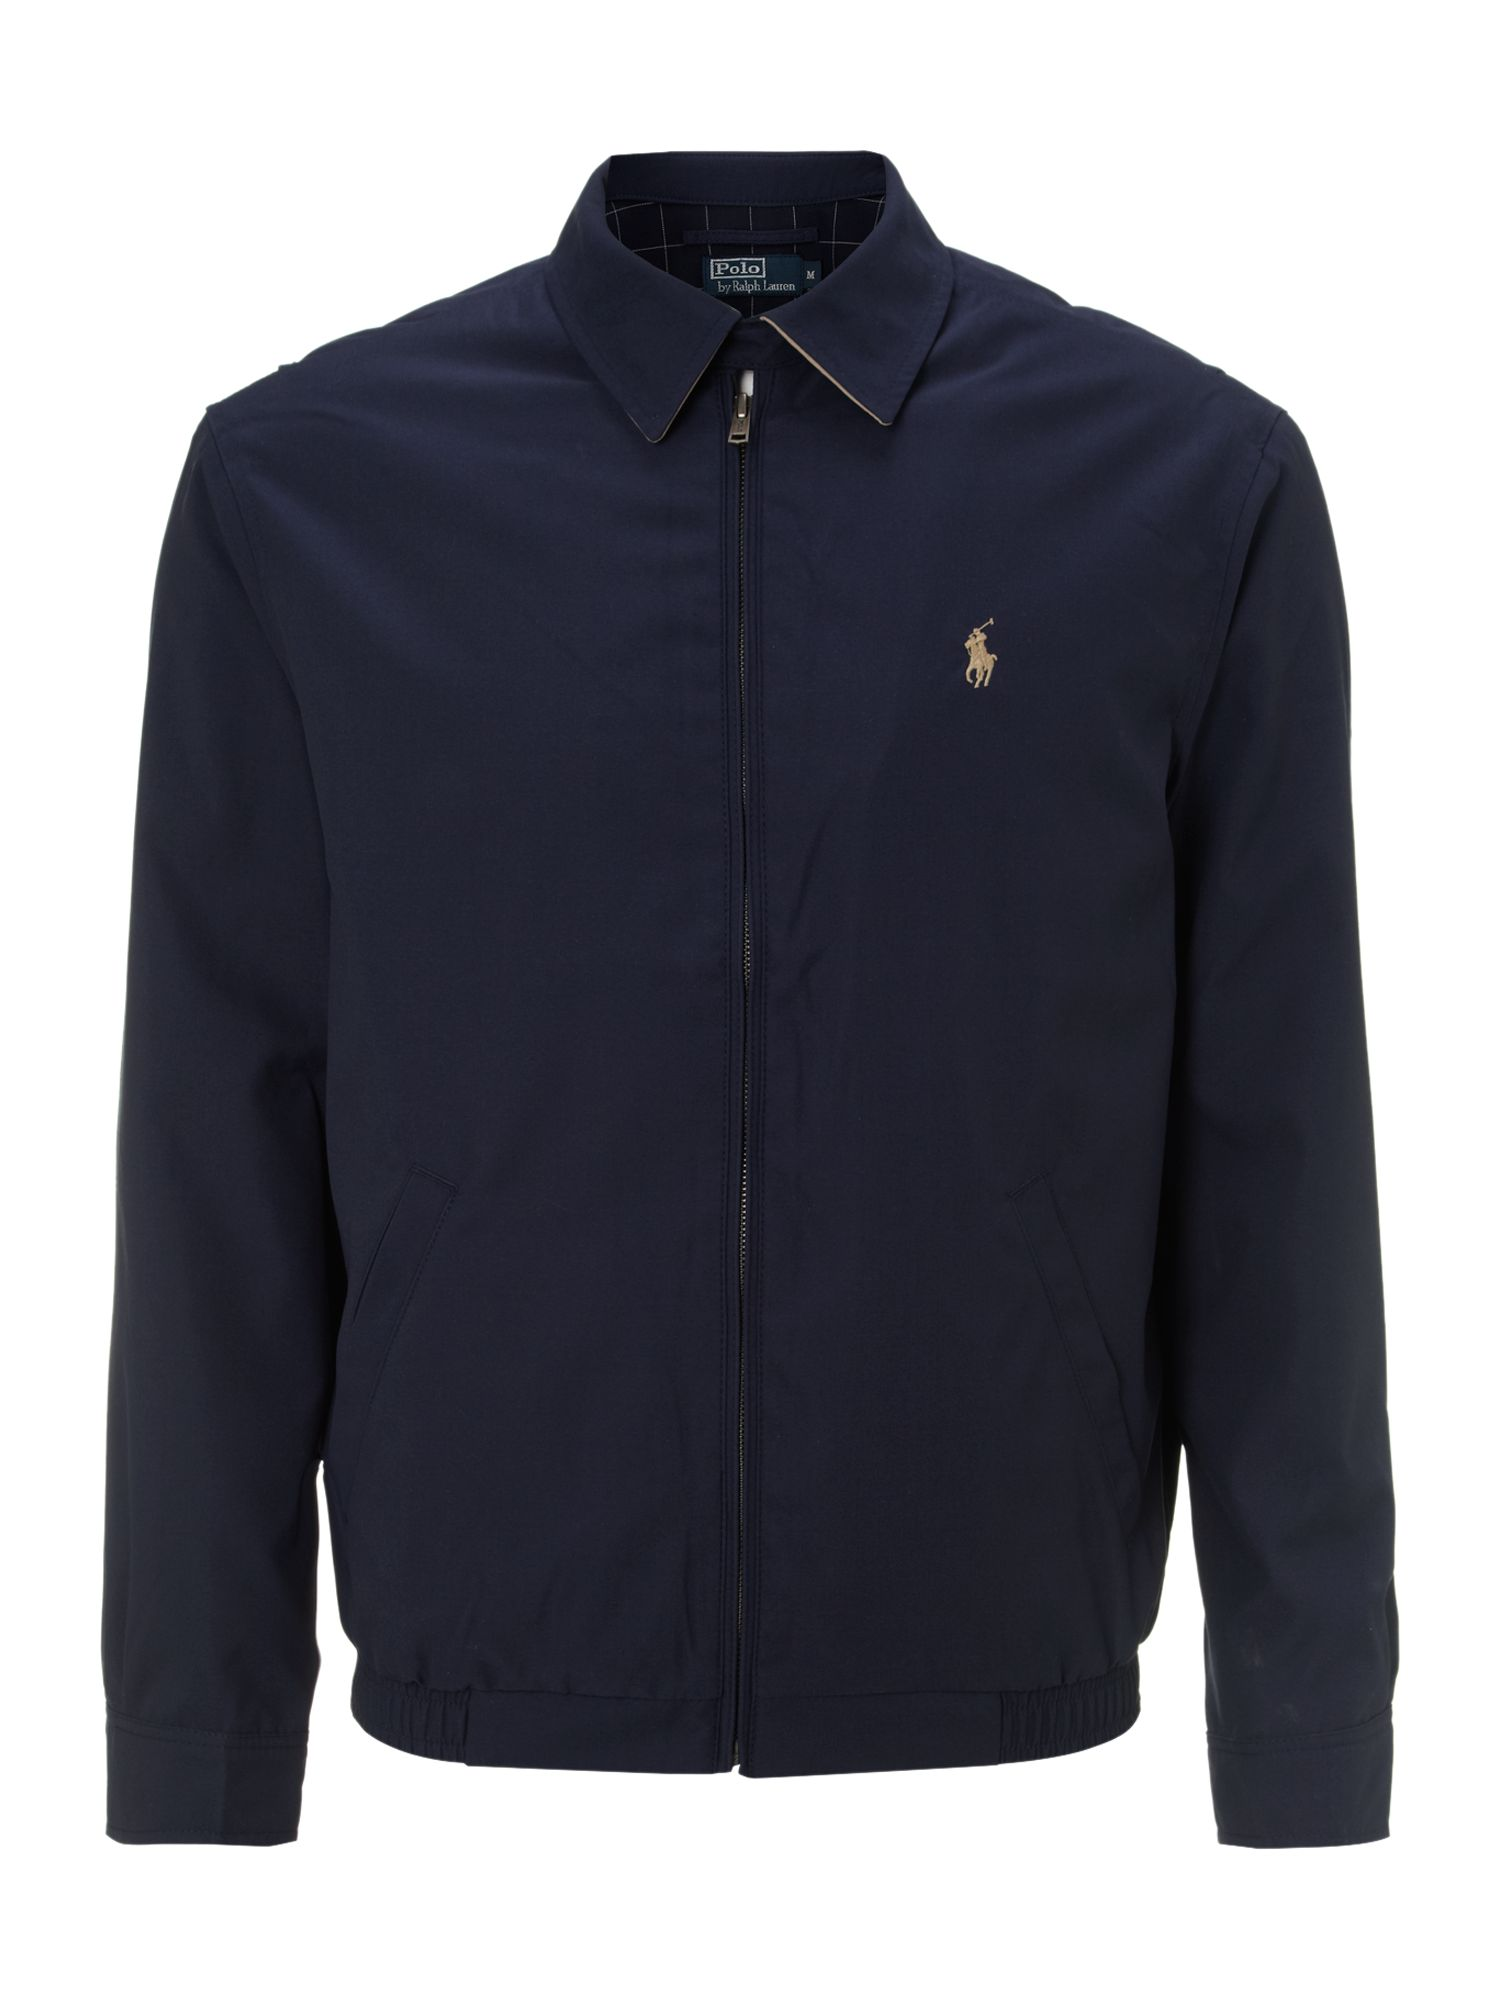 Polo ralph lauren Classic Windbreaker in Blue for Men | Lyst